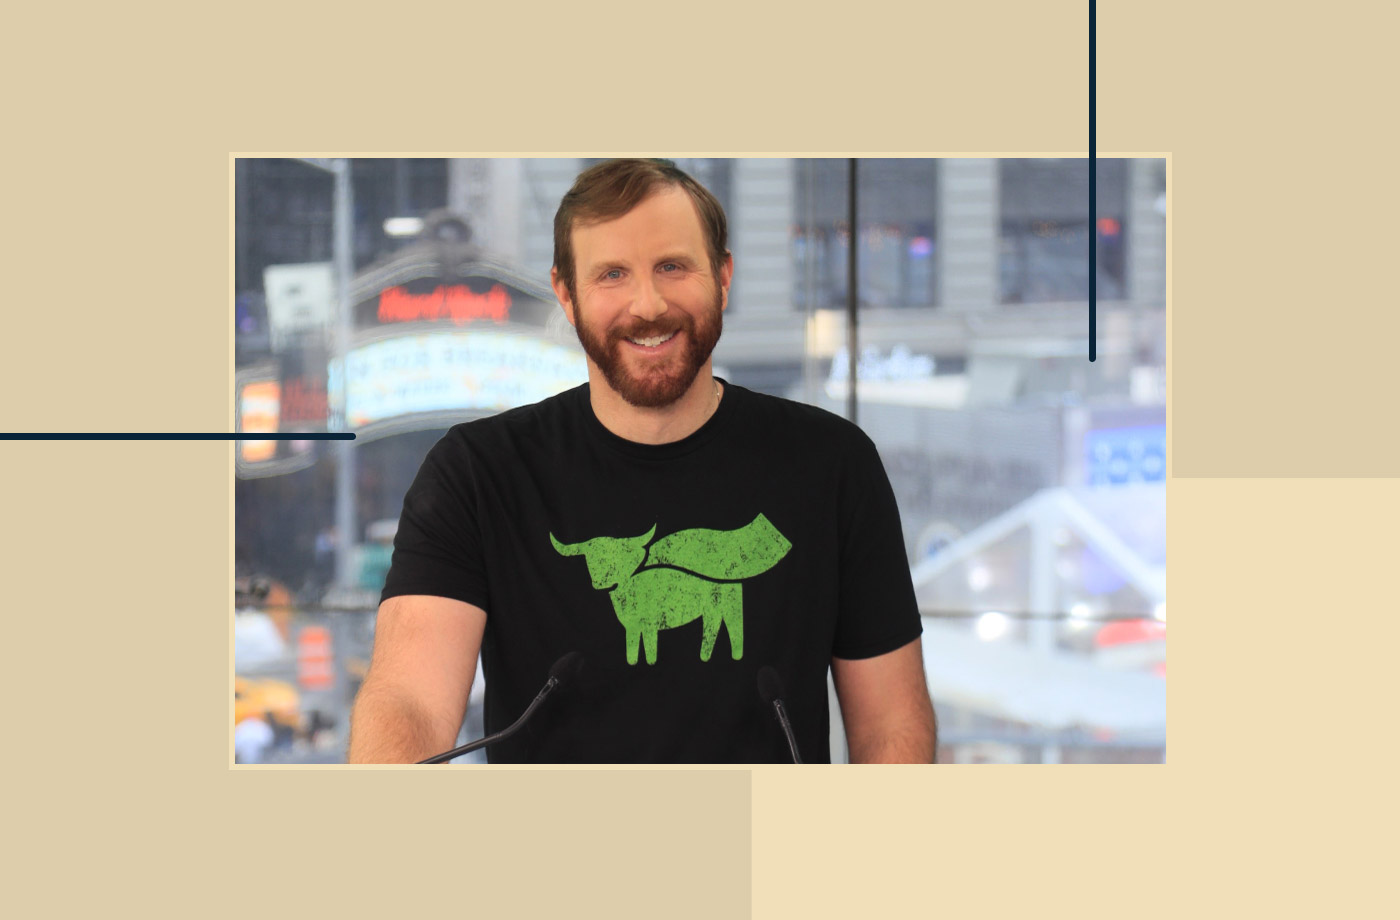 Beyond Meat CEO Ethan Brown on Business During the Pandemic, Kentucky Fried 'Chicken,' and Never Truly Being Done Perfecting a Product